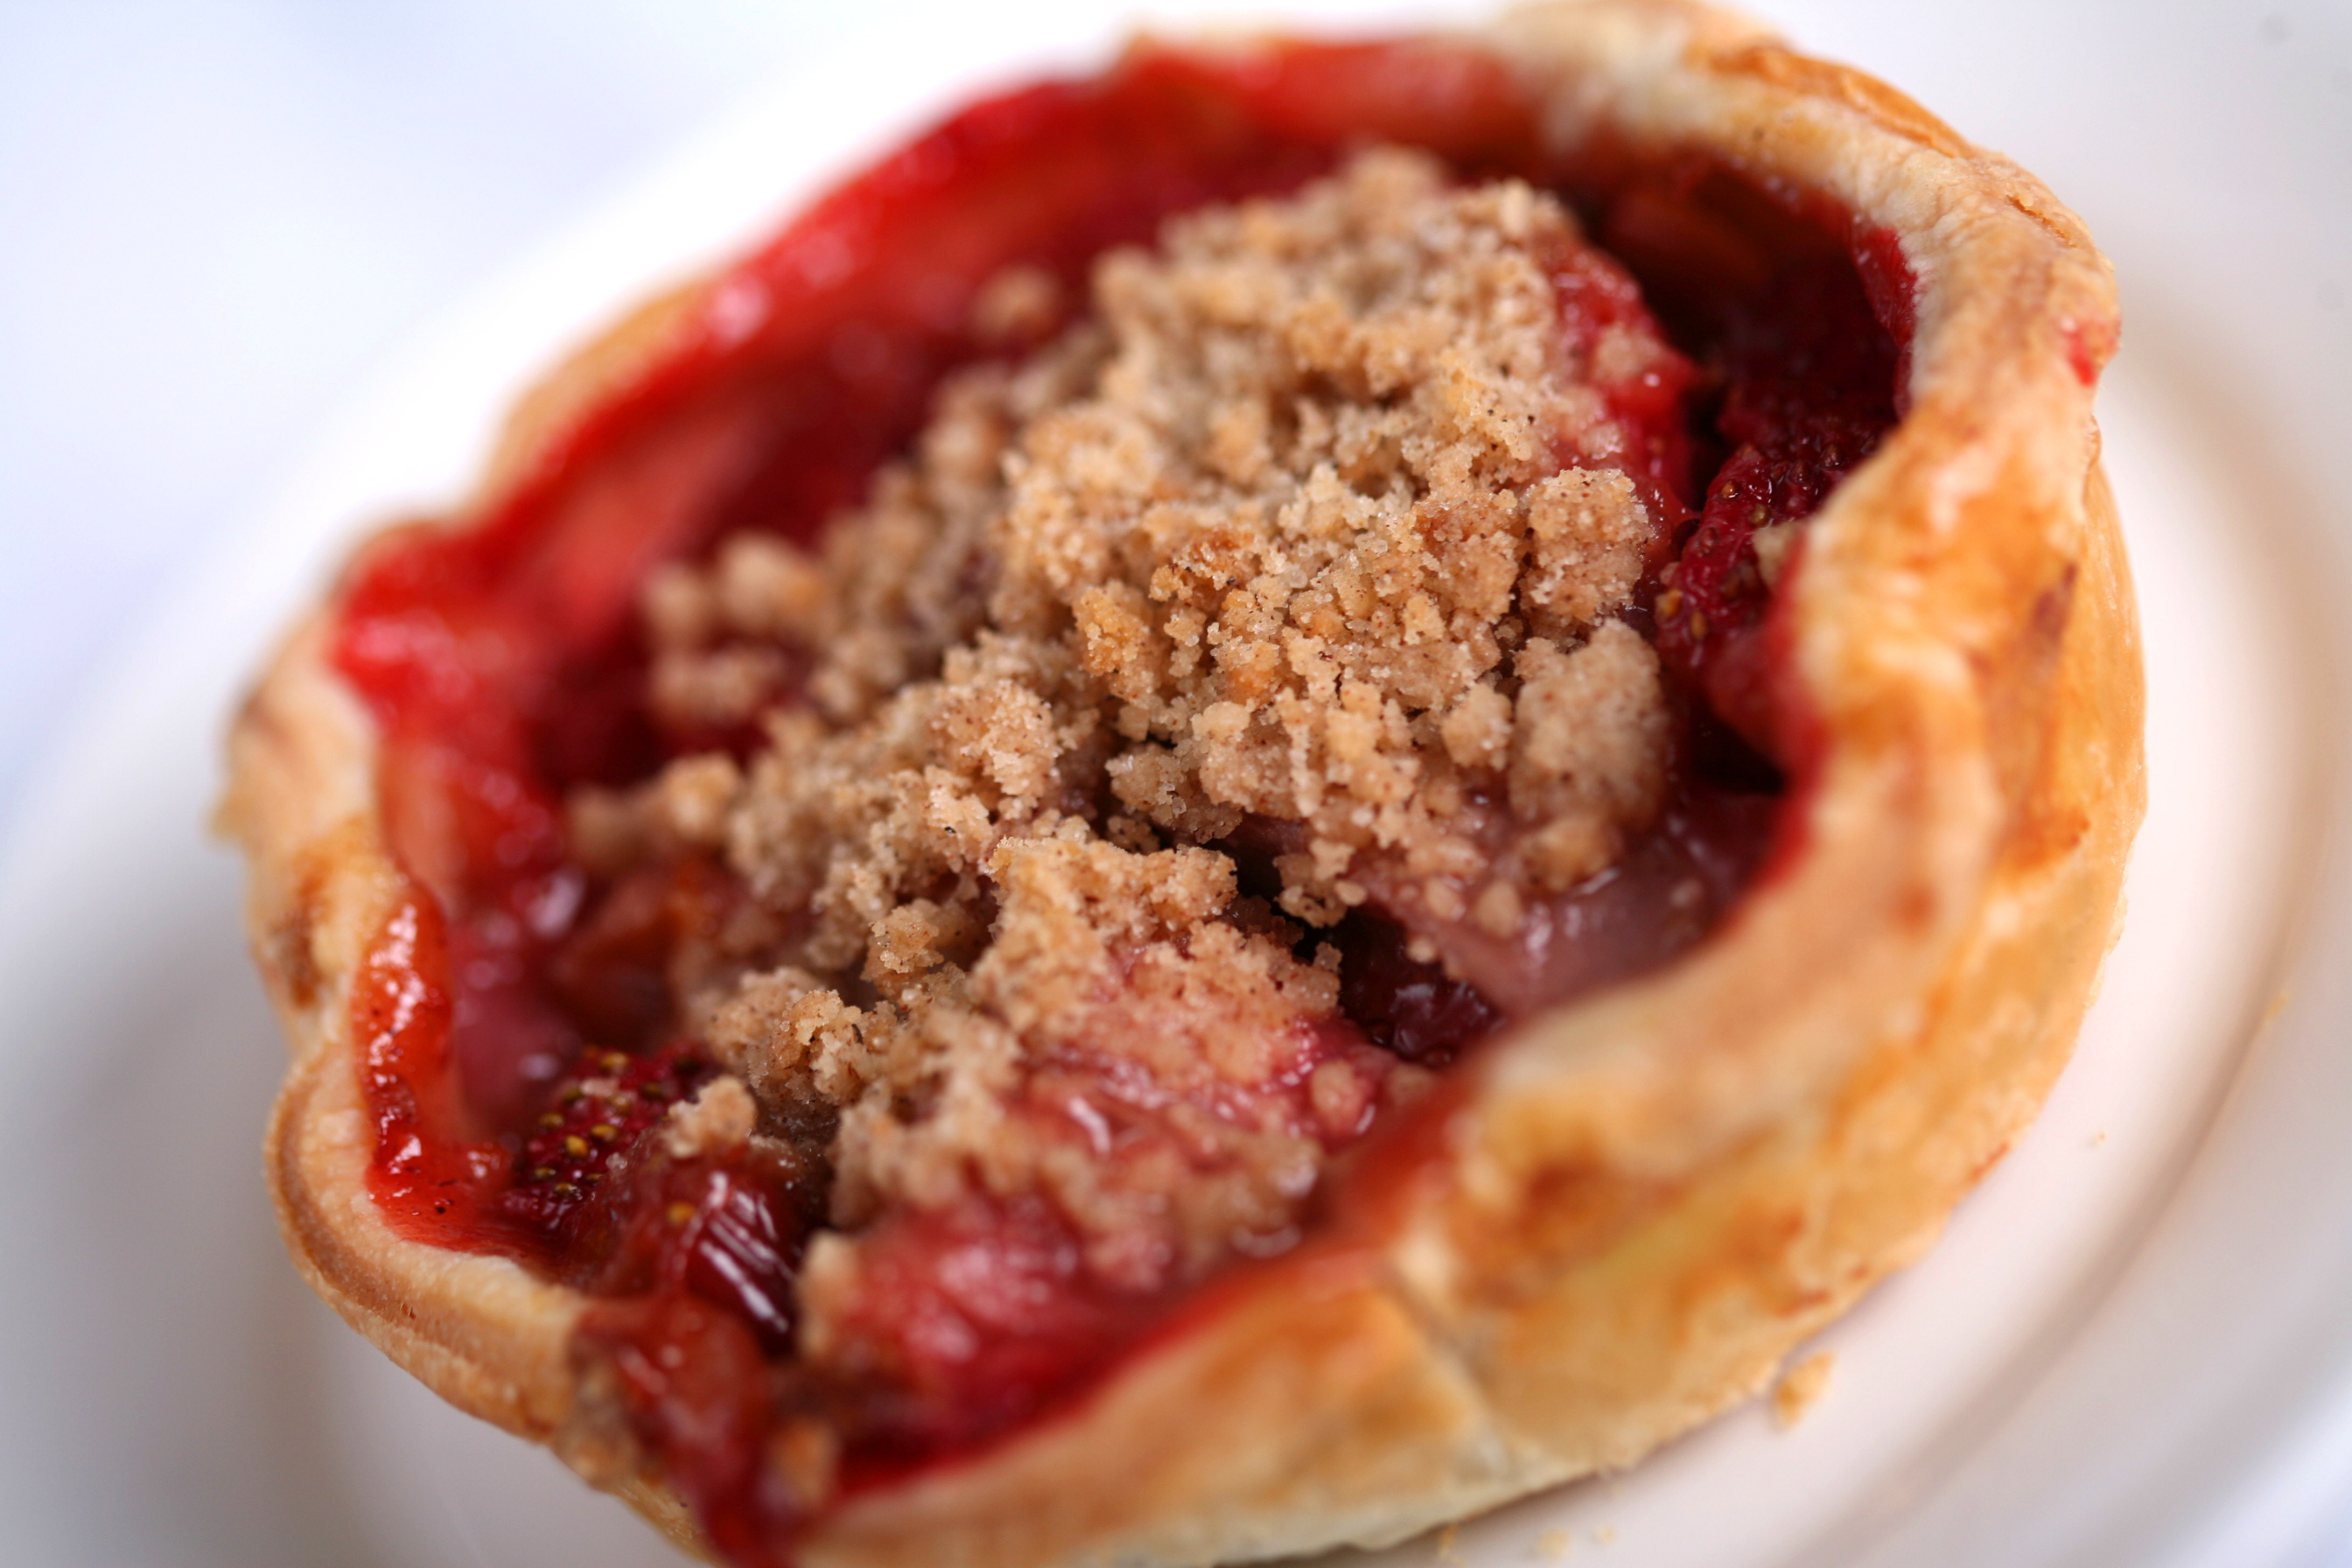 Strawberry Rhubarb Pie from Flo&#039;s V-8 Cafe at Disney California Adventure